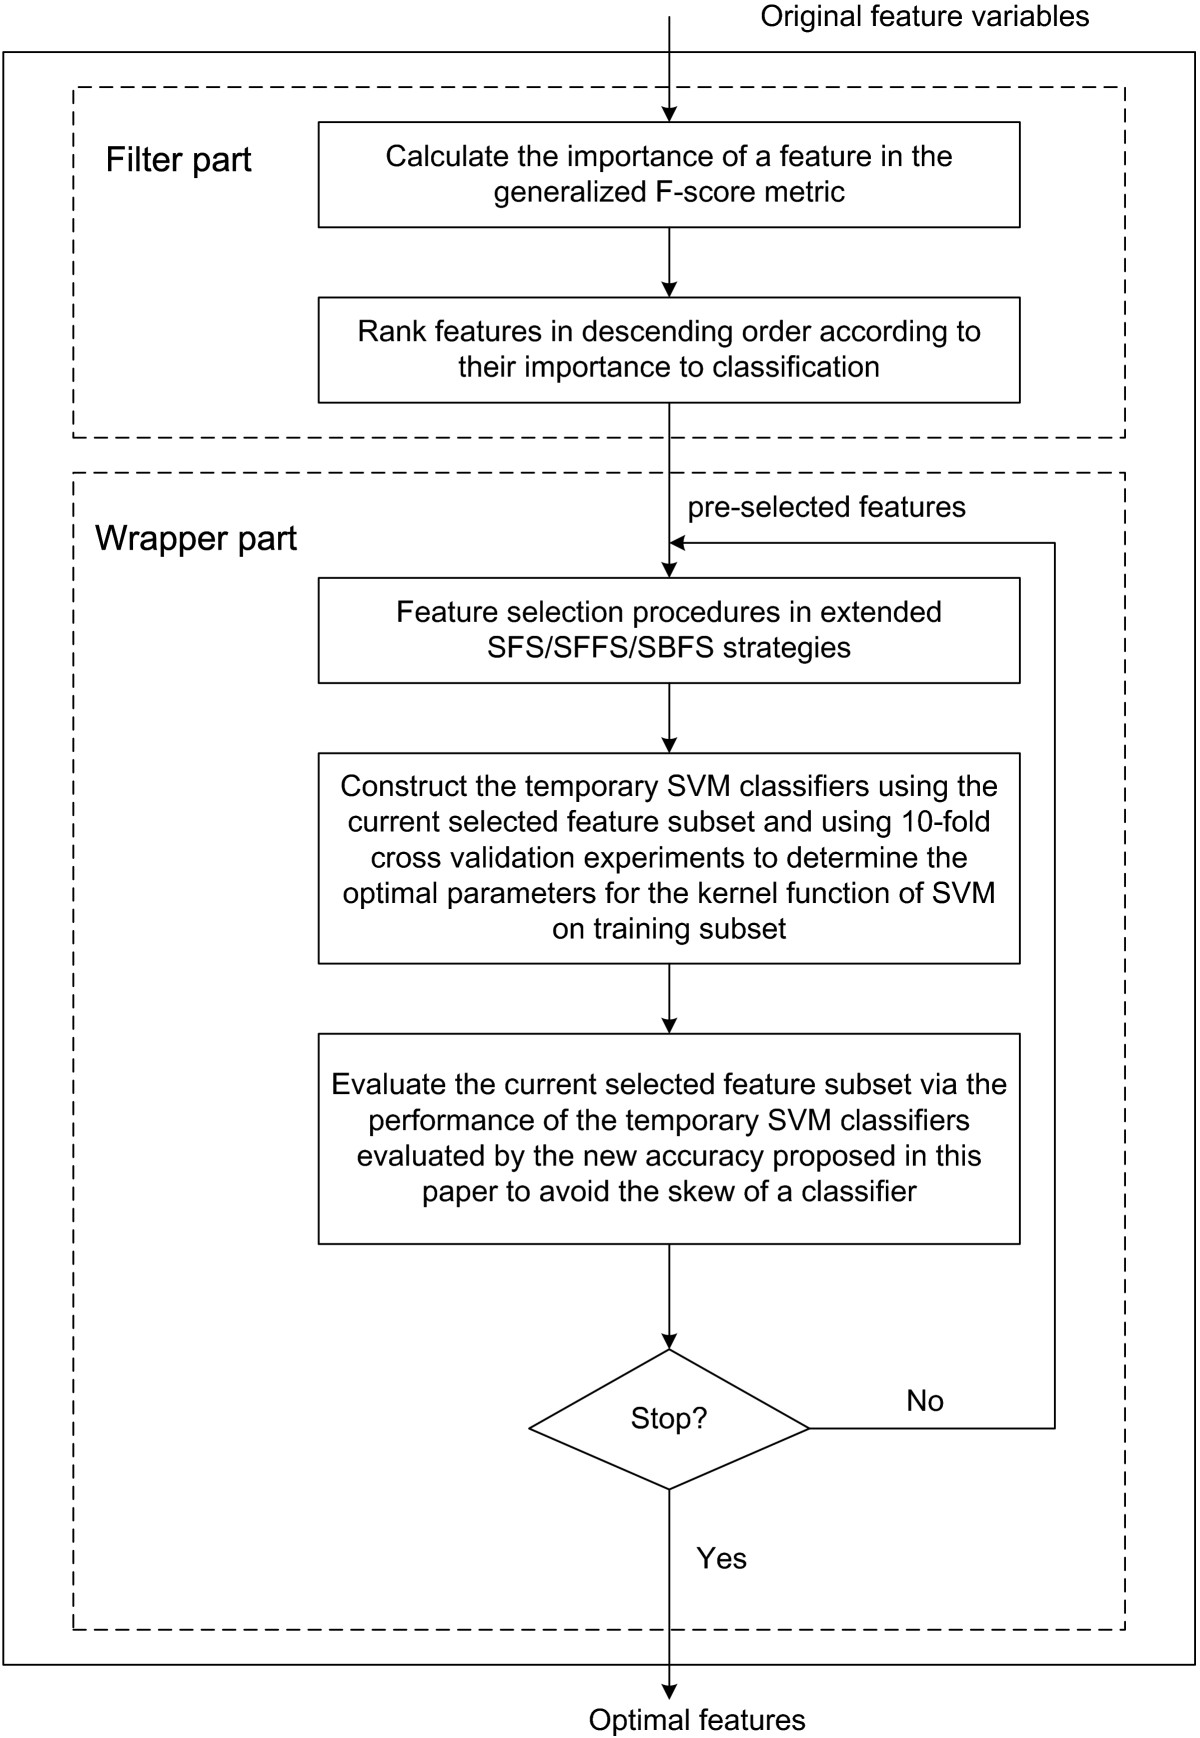 https://static-content.springer.com/image/art%3A10.1186%2F2047-2501-1-10/MediaObjects/13755_2012_Article_10_Fig1_HTML.jpg